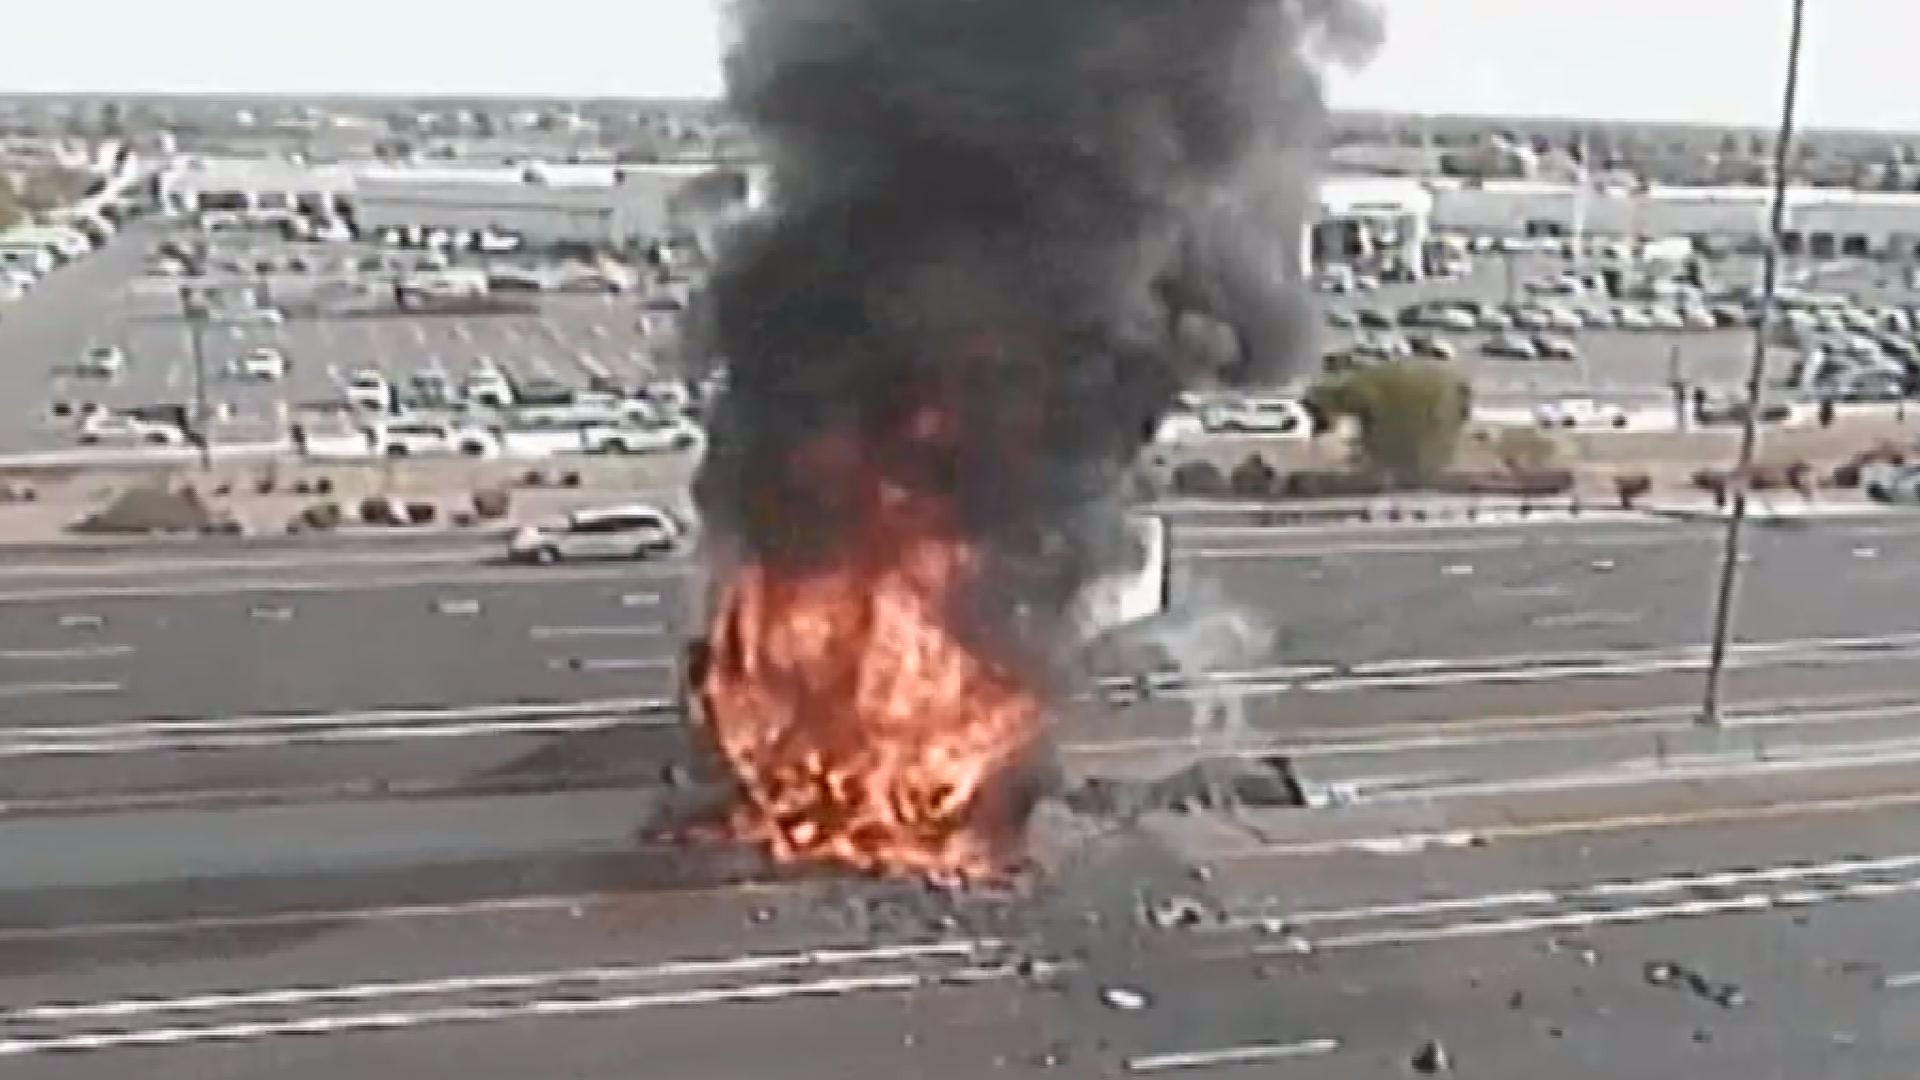 http://www.12news.com/news/local/valley/truck-driver-survives-firey-crash-hopes-for-industry-change/379494169